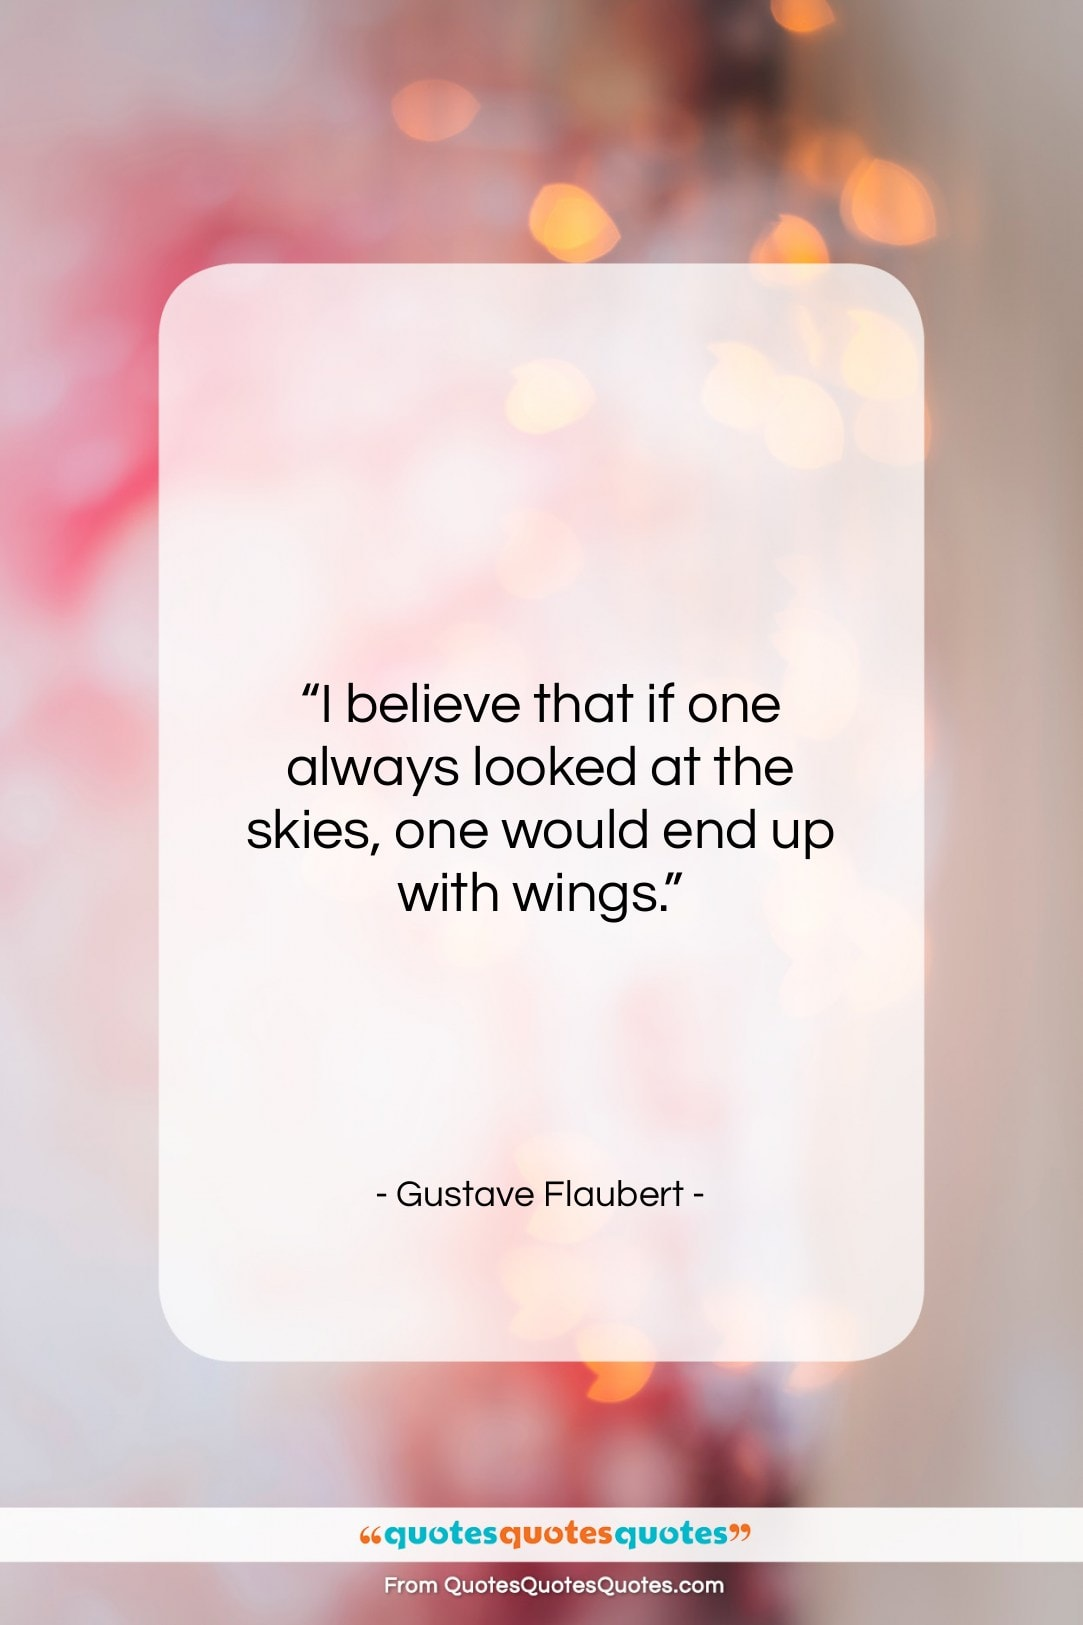 """Gustave Flaubert quote: """"I believe that if one always looked…""""- at QuotesQuotesQuotes.com"""